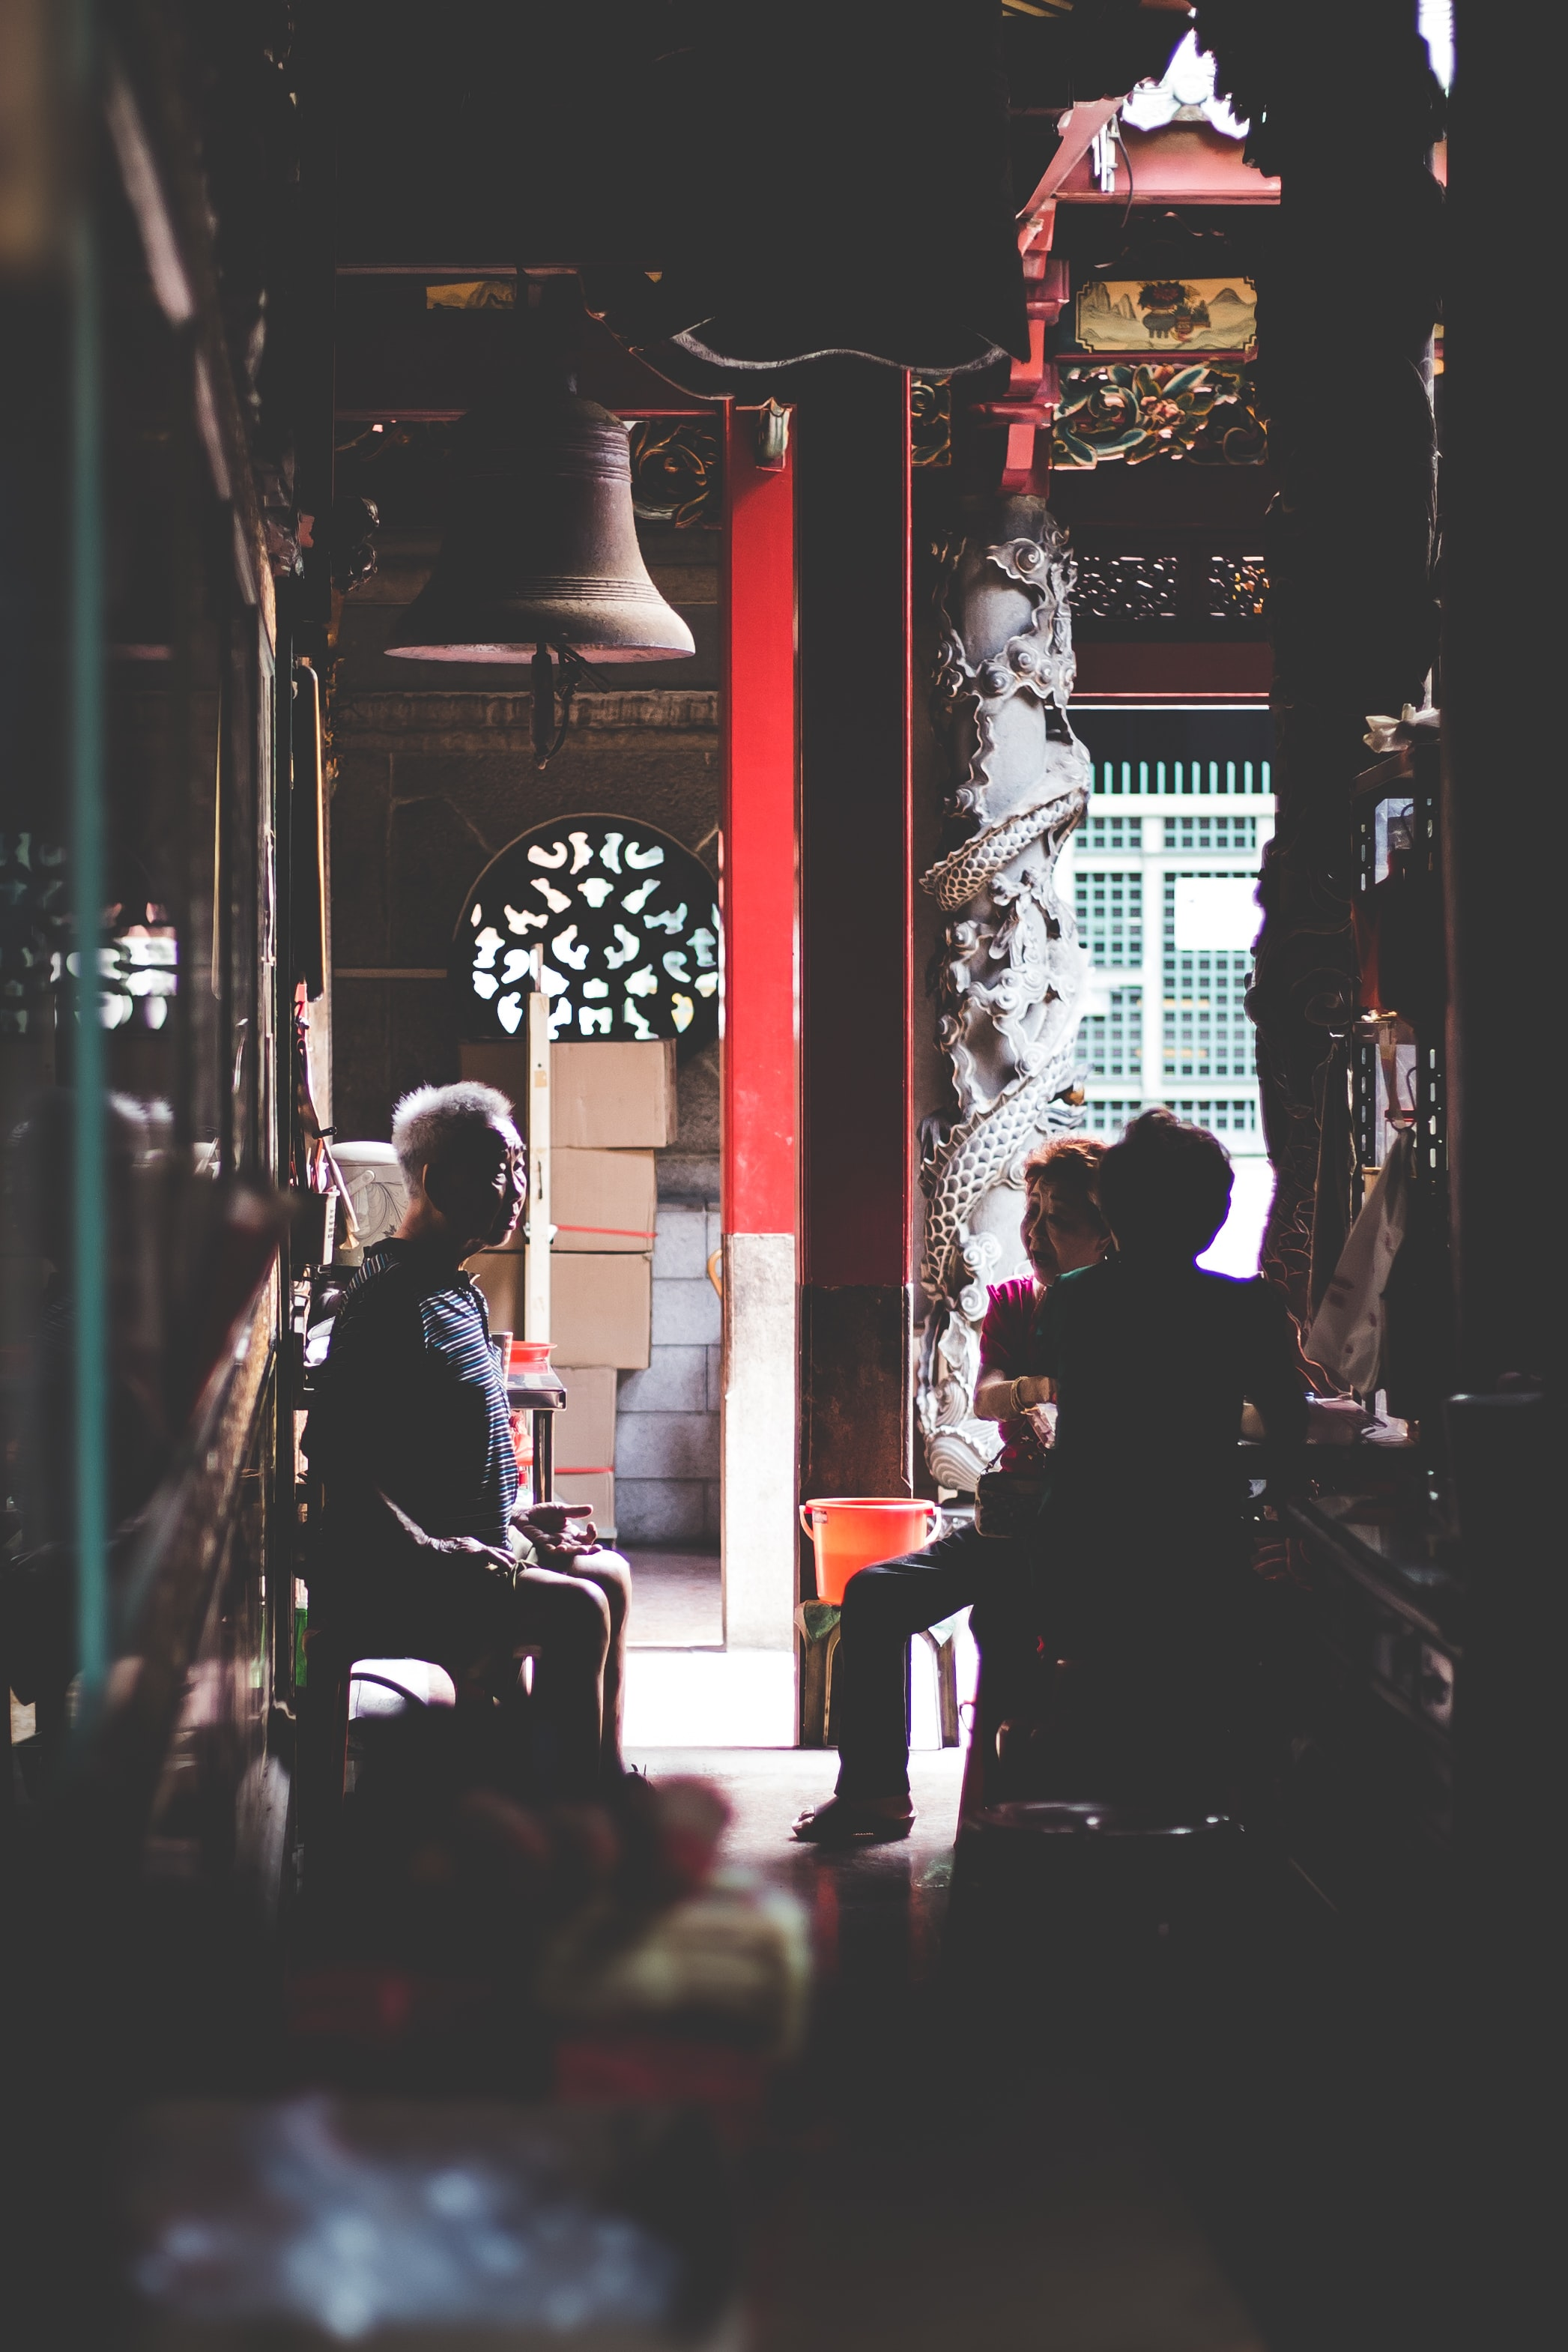 low-light photography of three people sitting on chairs indoors